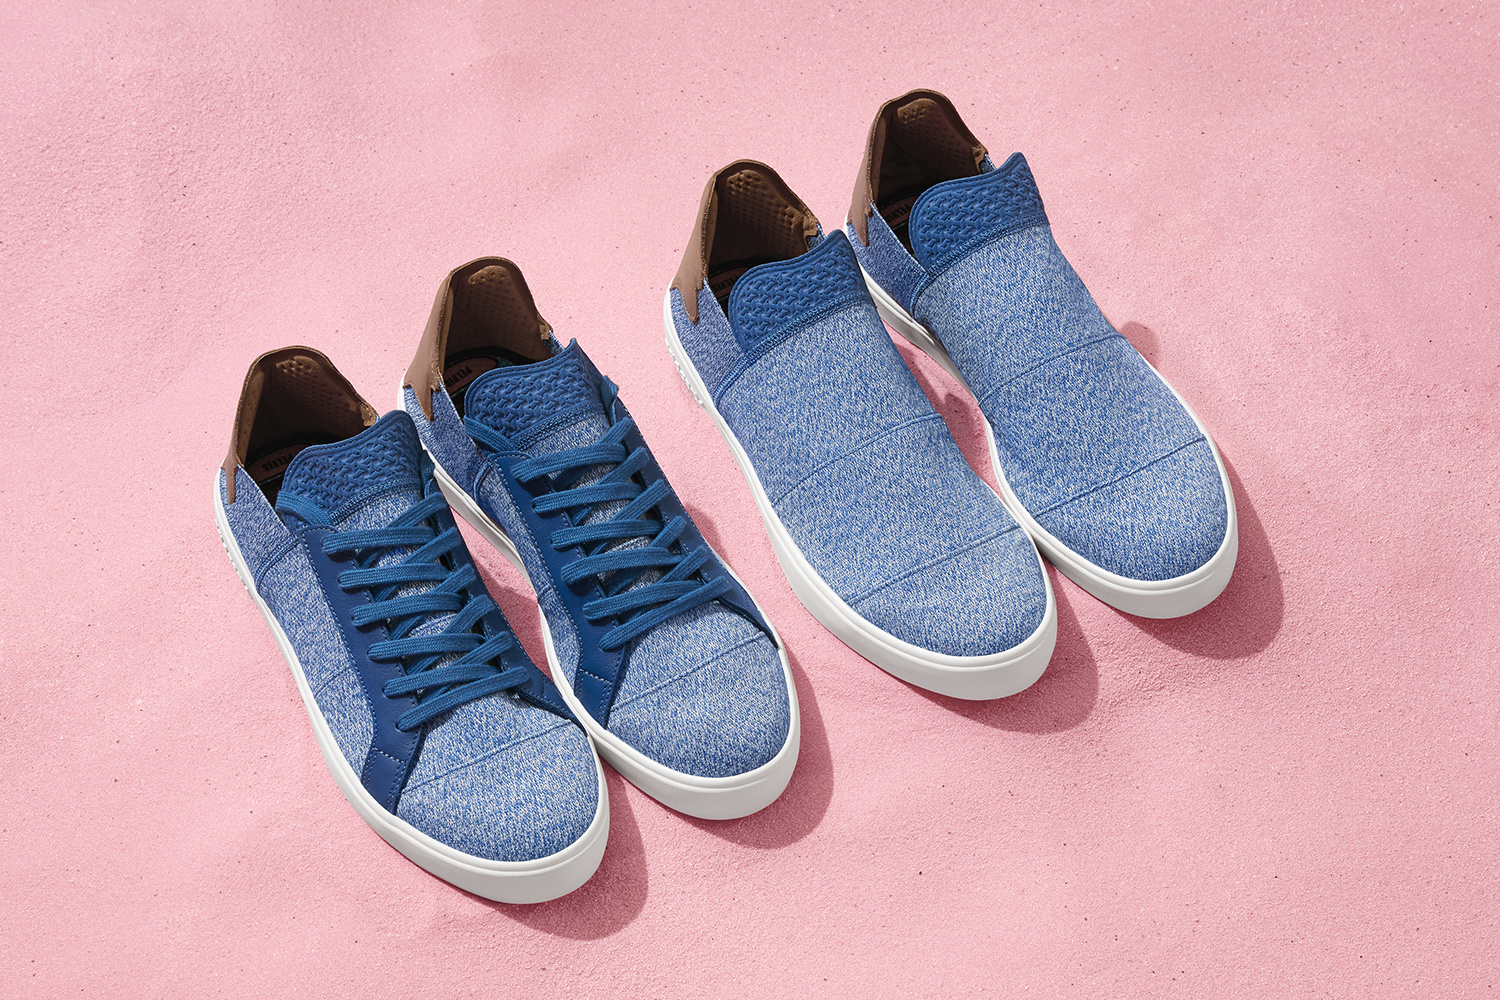 pharrell-adidas-pink-beach-delivery-2-10.jpg